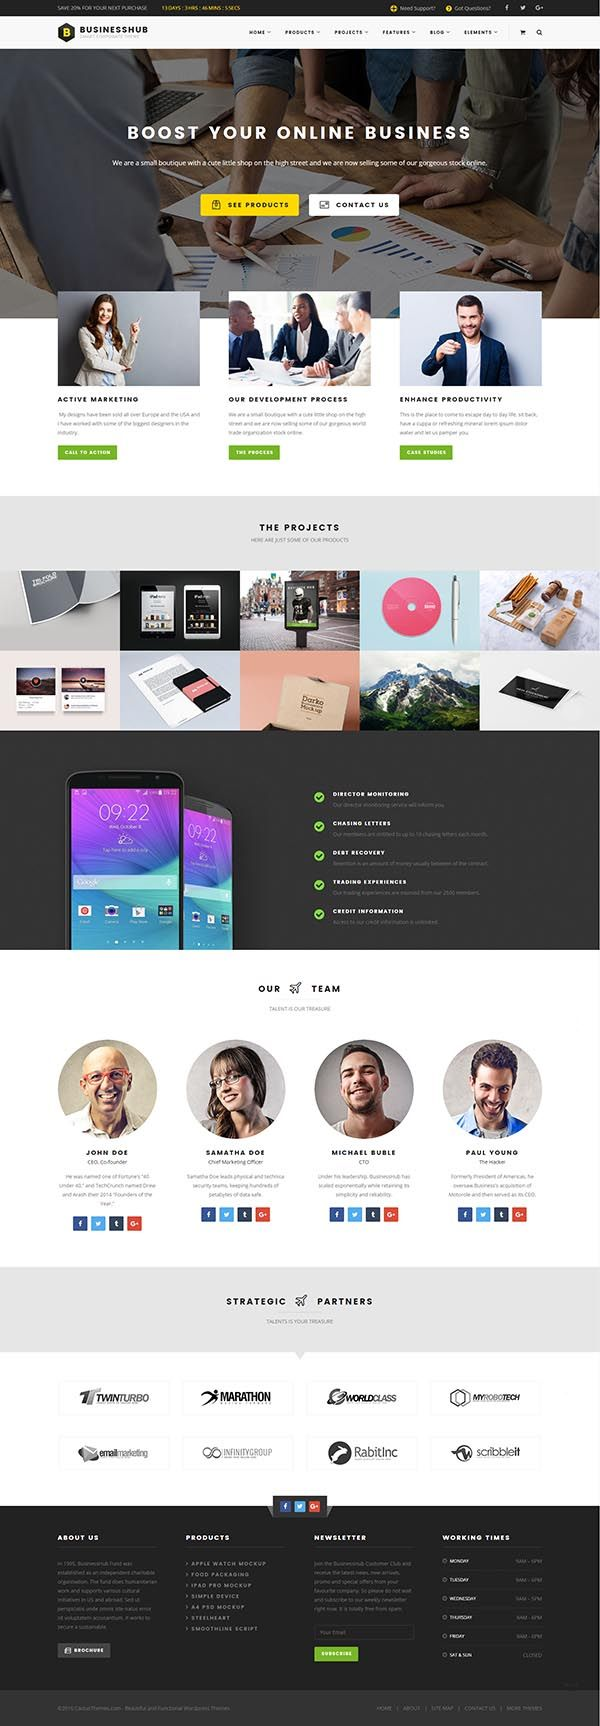 Business Hub : Responsive WordPress Theme For Online Business